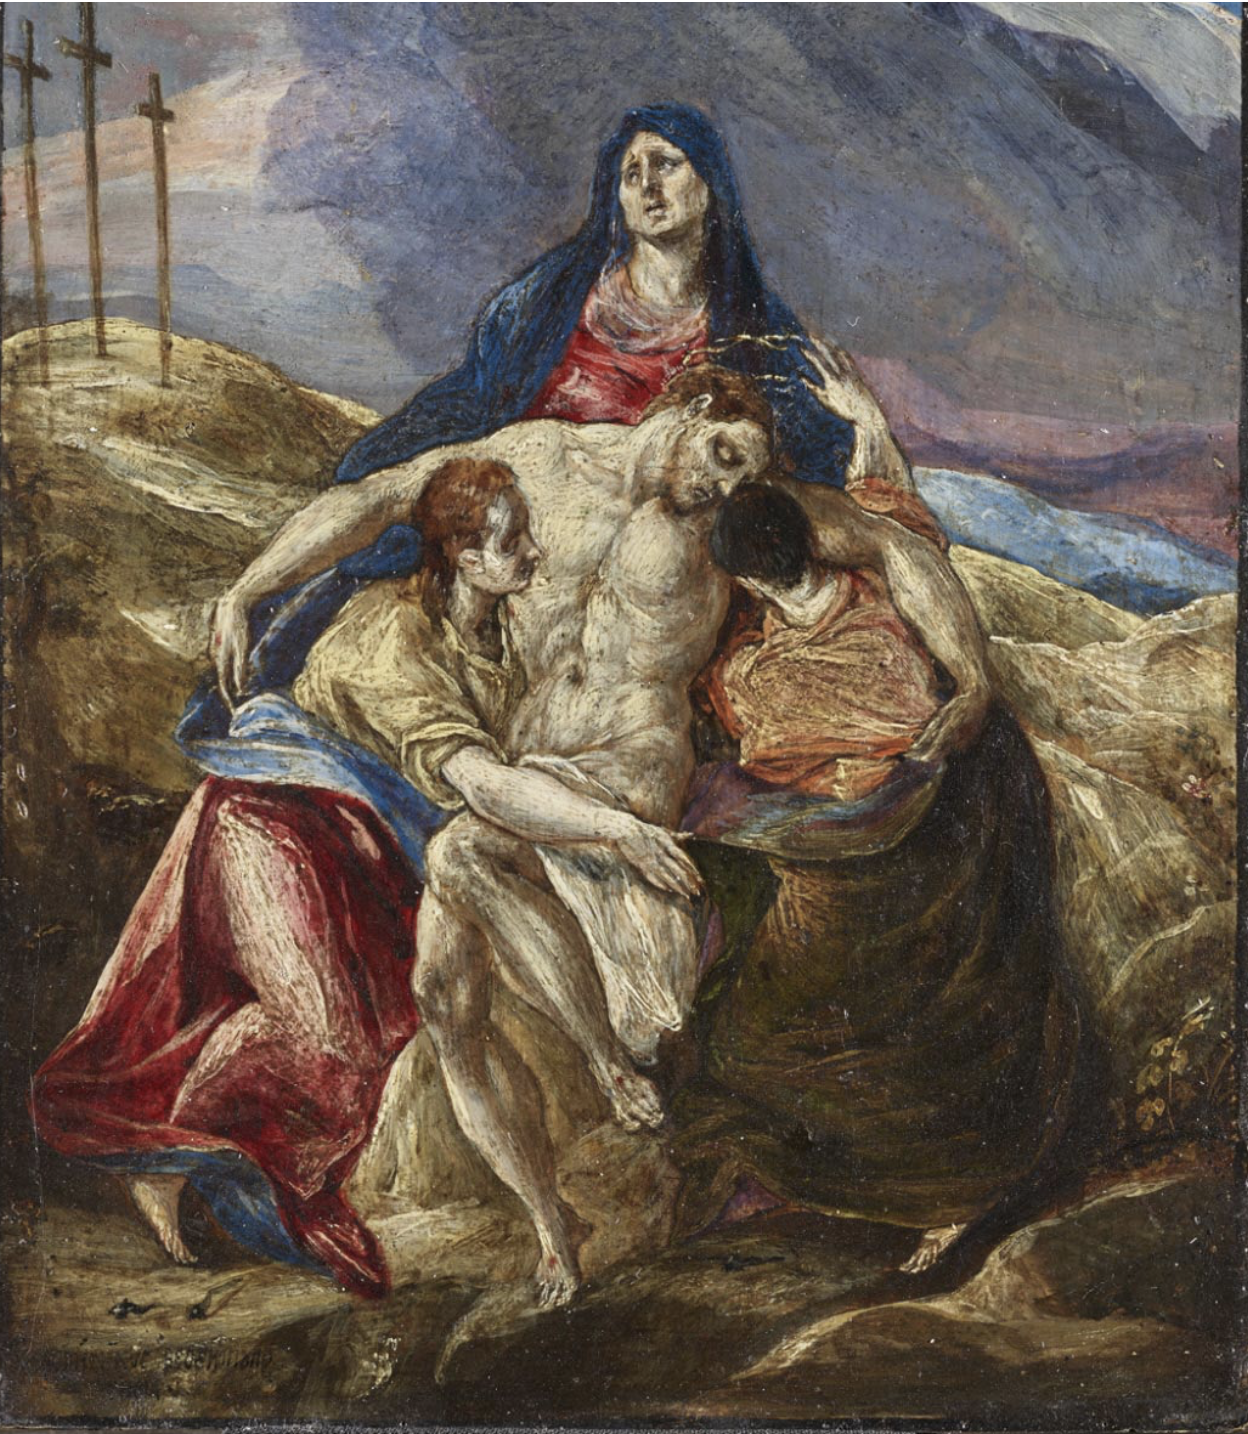 El Greco,  Lamentation , 1571-76, oil on panel, Philadelphia Museum of Art